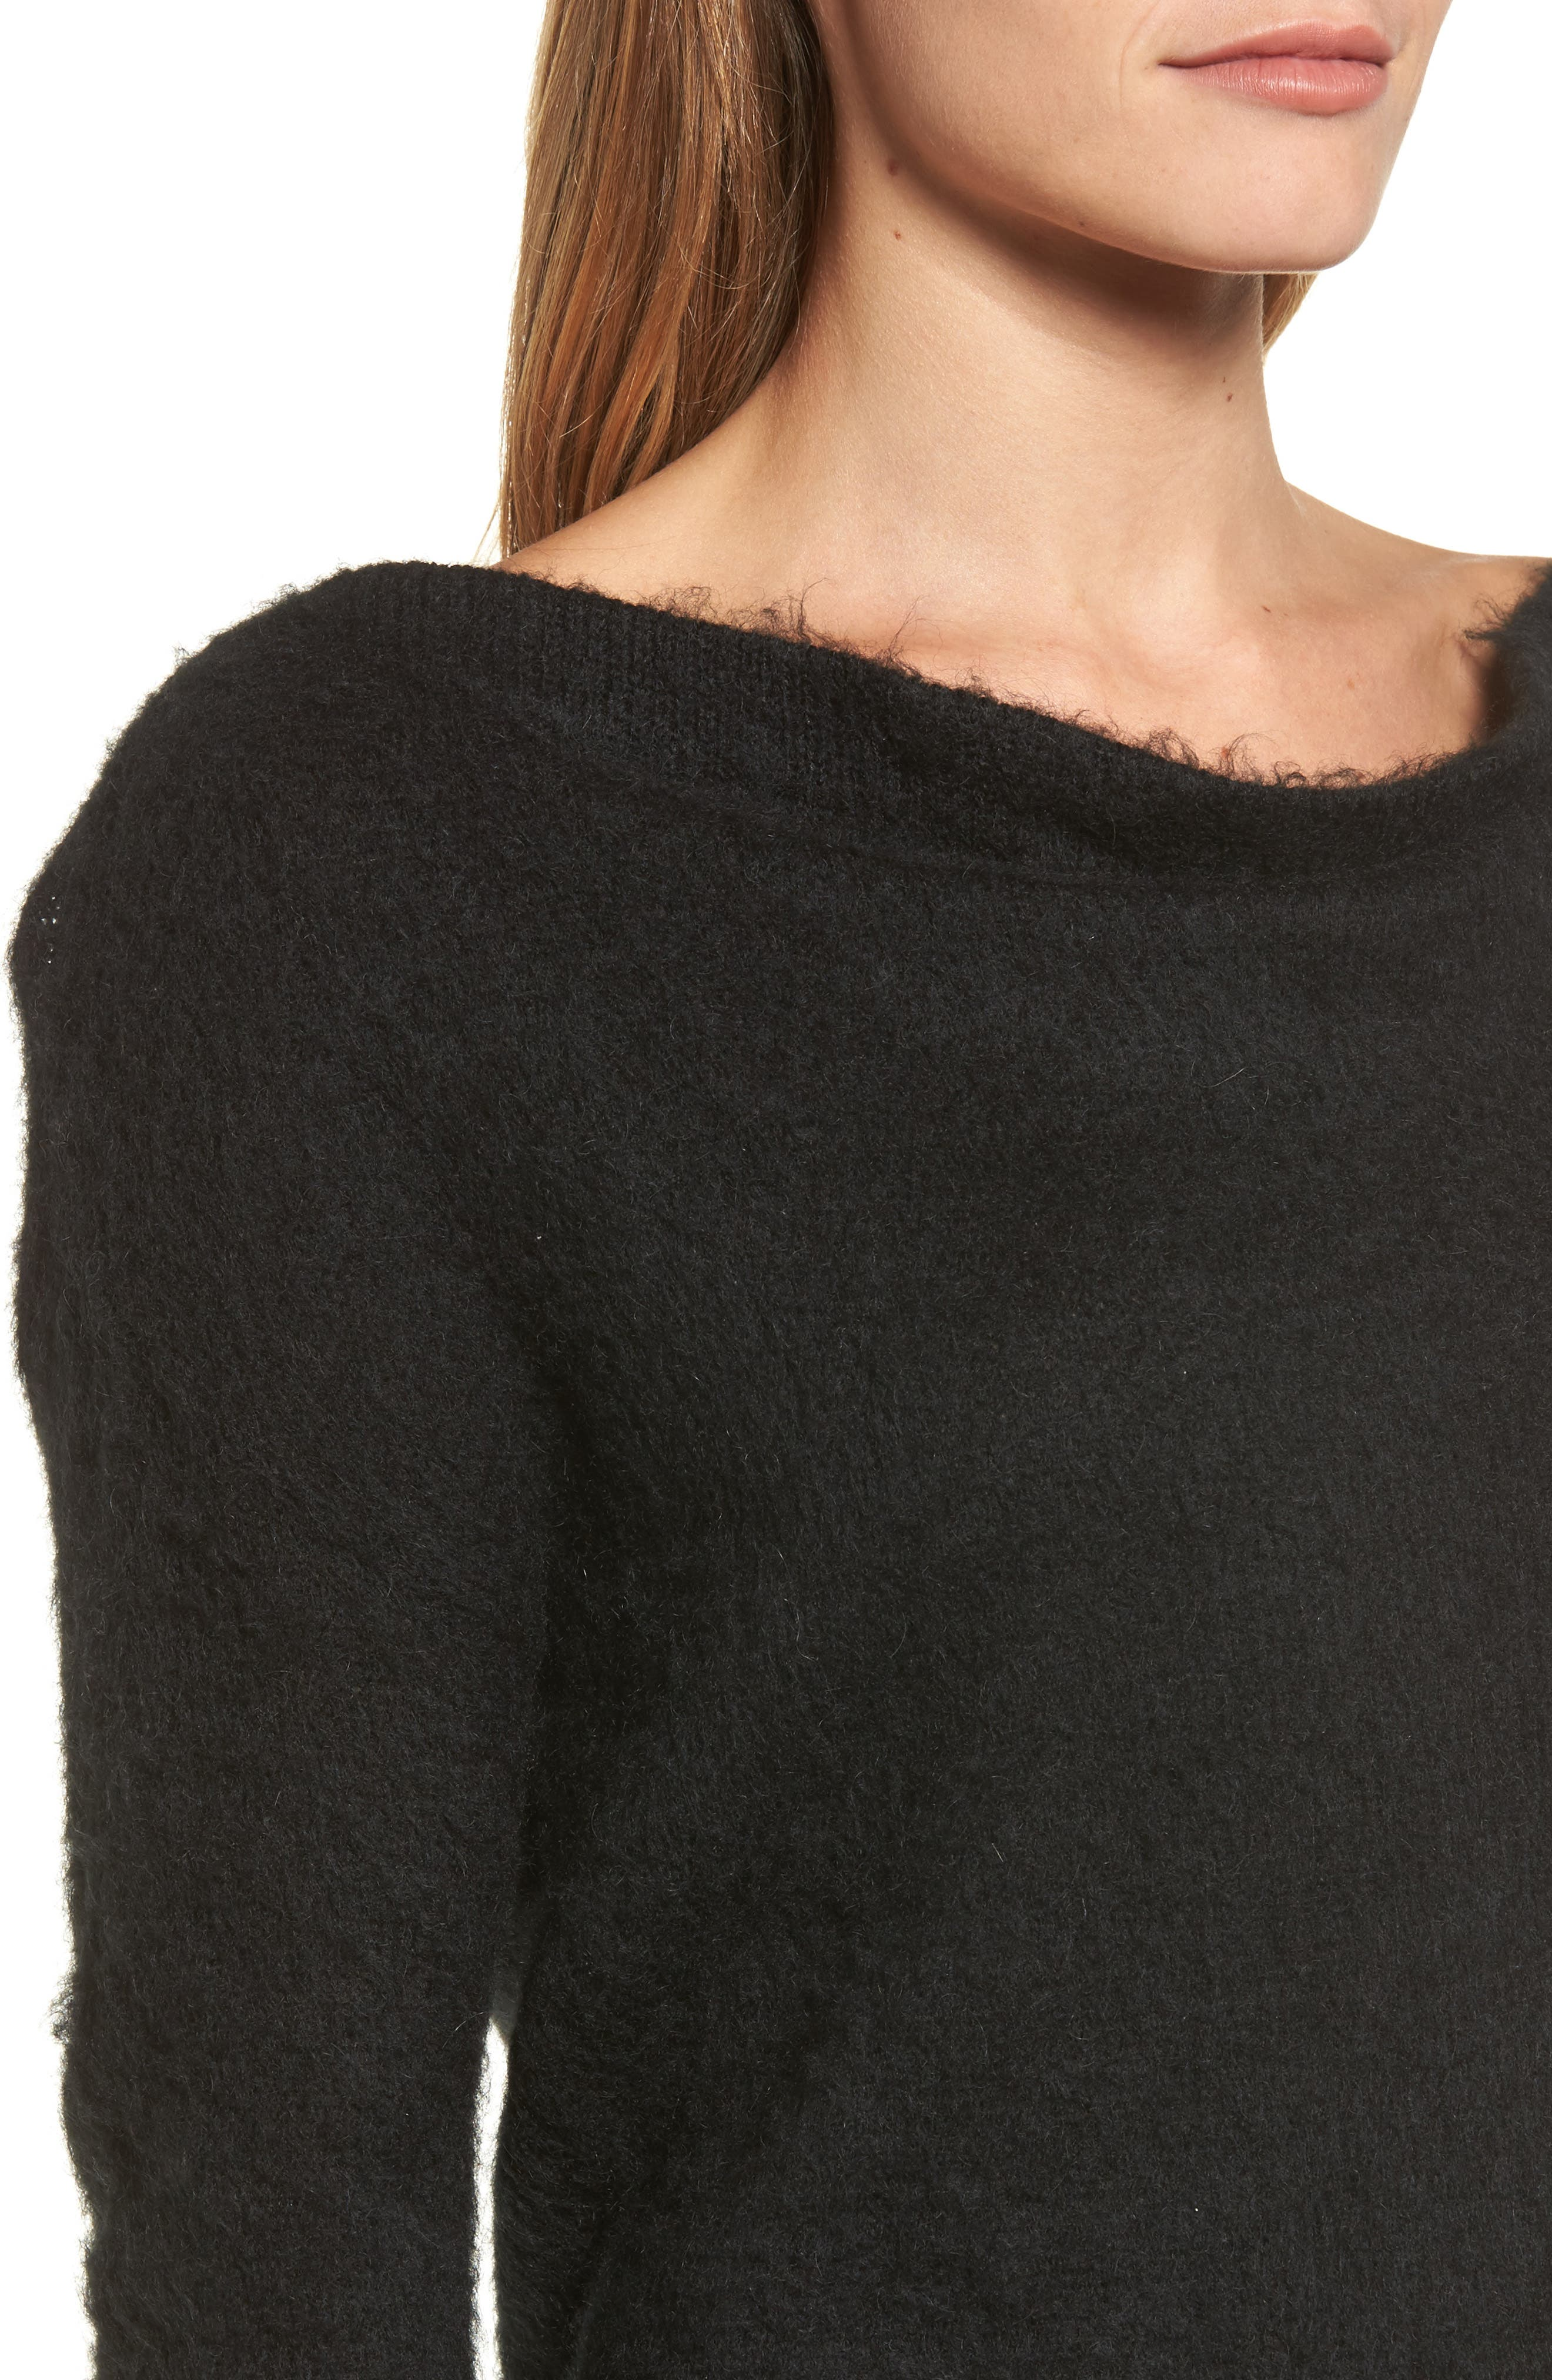 Long Sleeve Brushed Sweater,                             Alternate thumbnail 19, color,